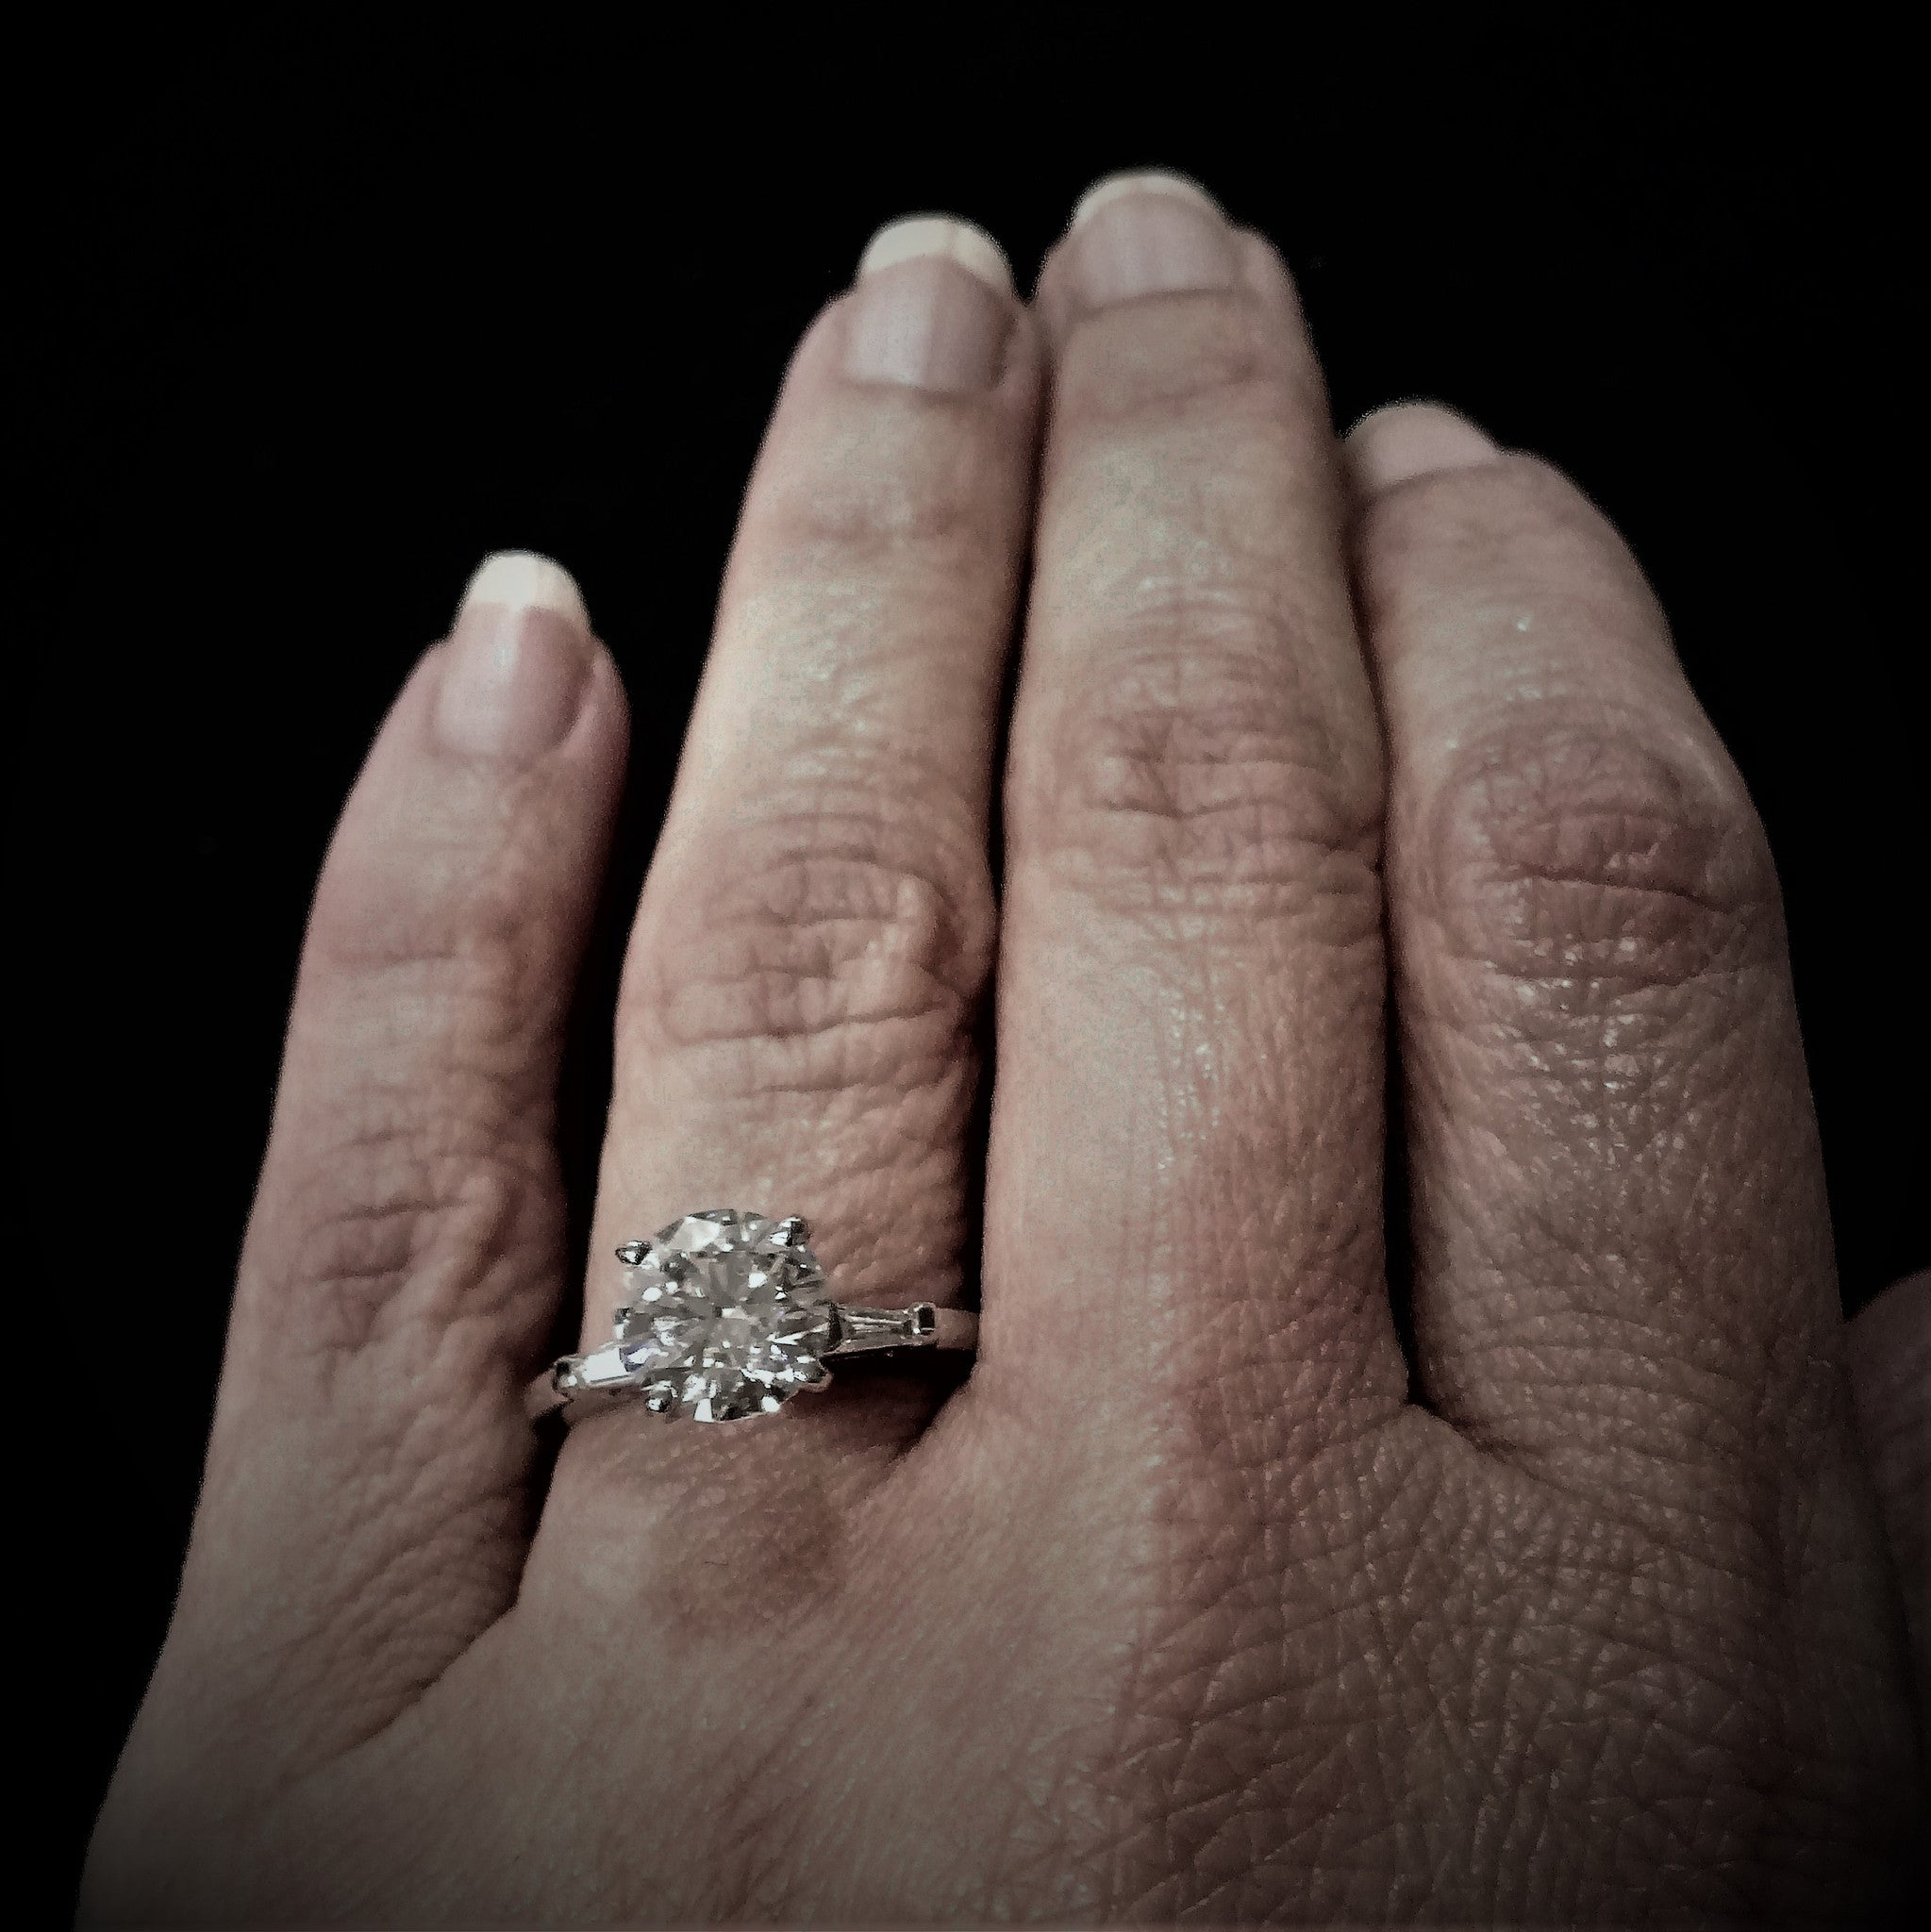 a larger to size engagement rings ring topic bit your than are actually tend marquise me carat they show diamonds look